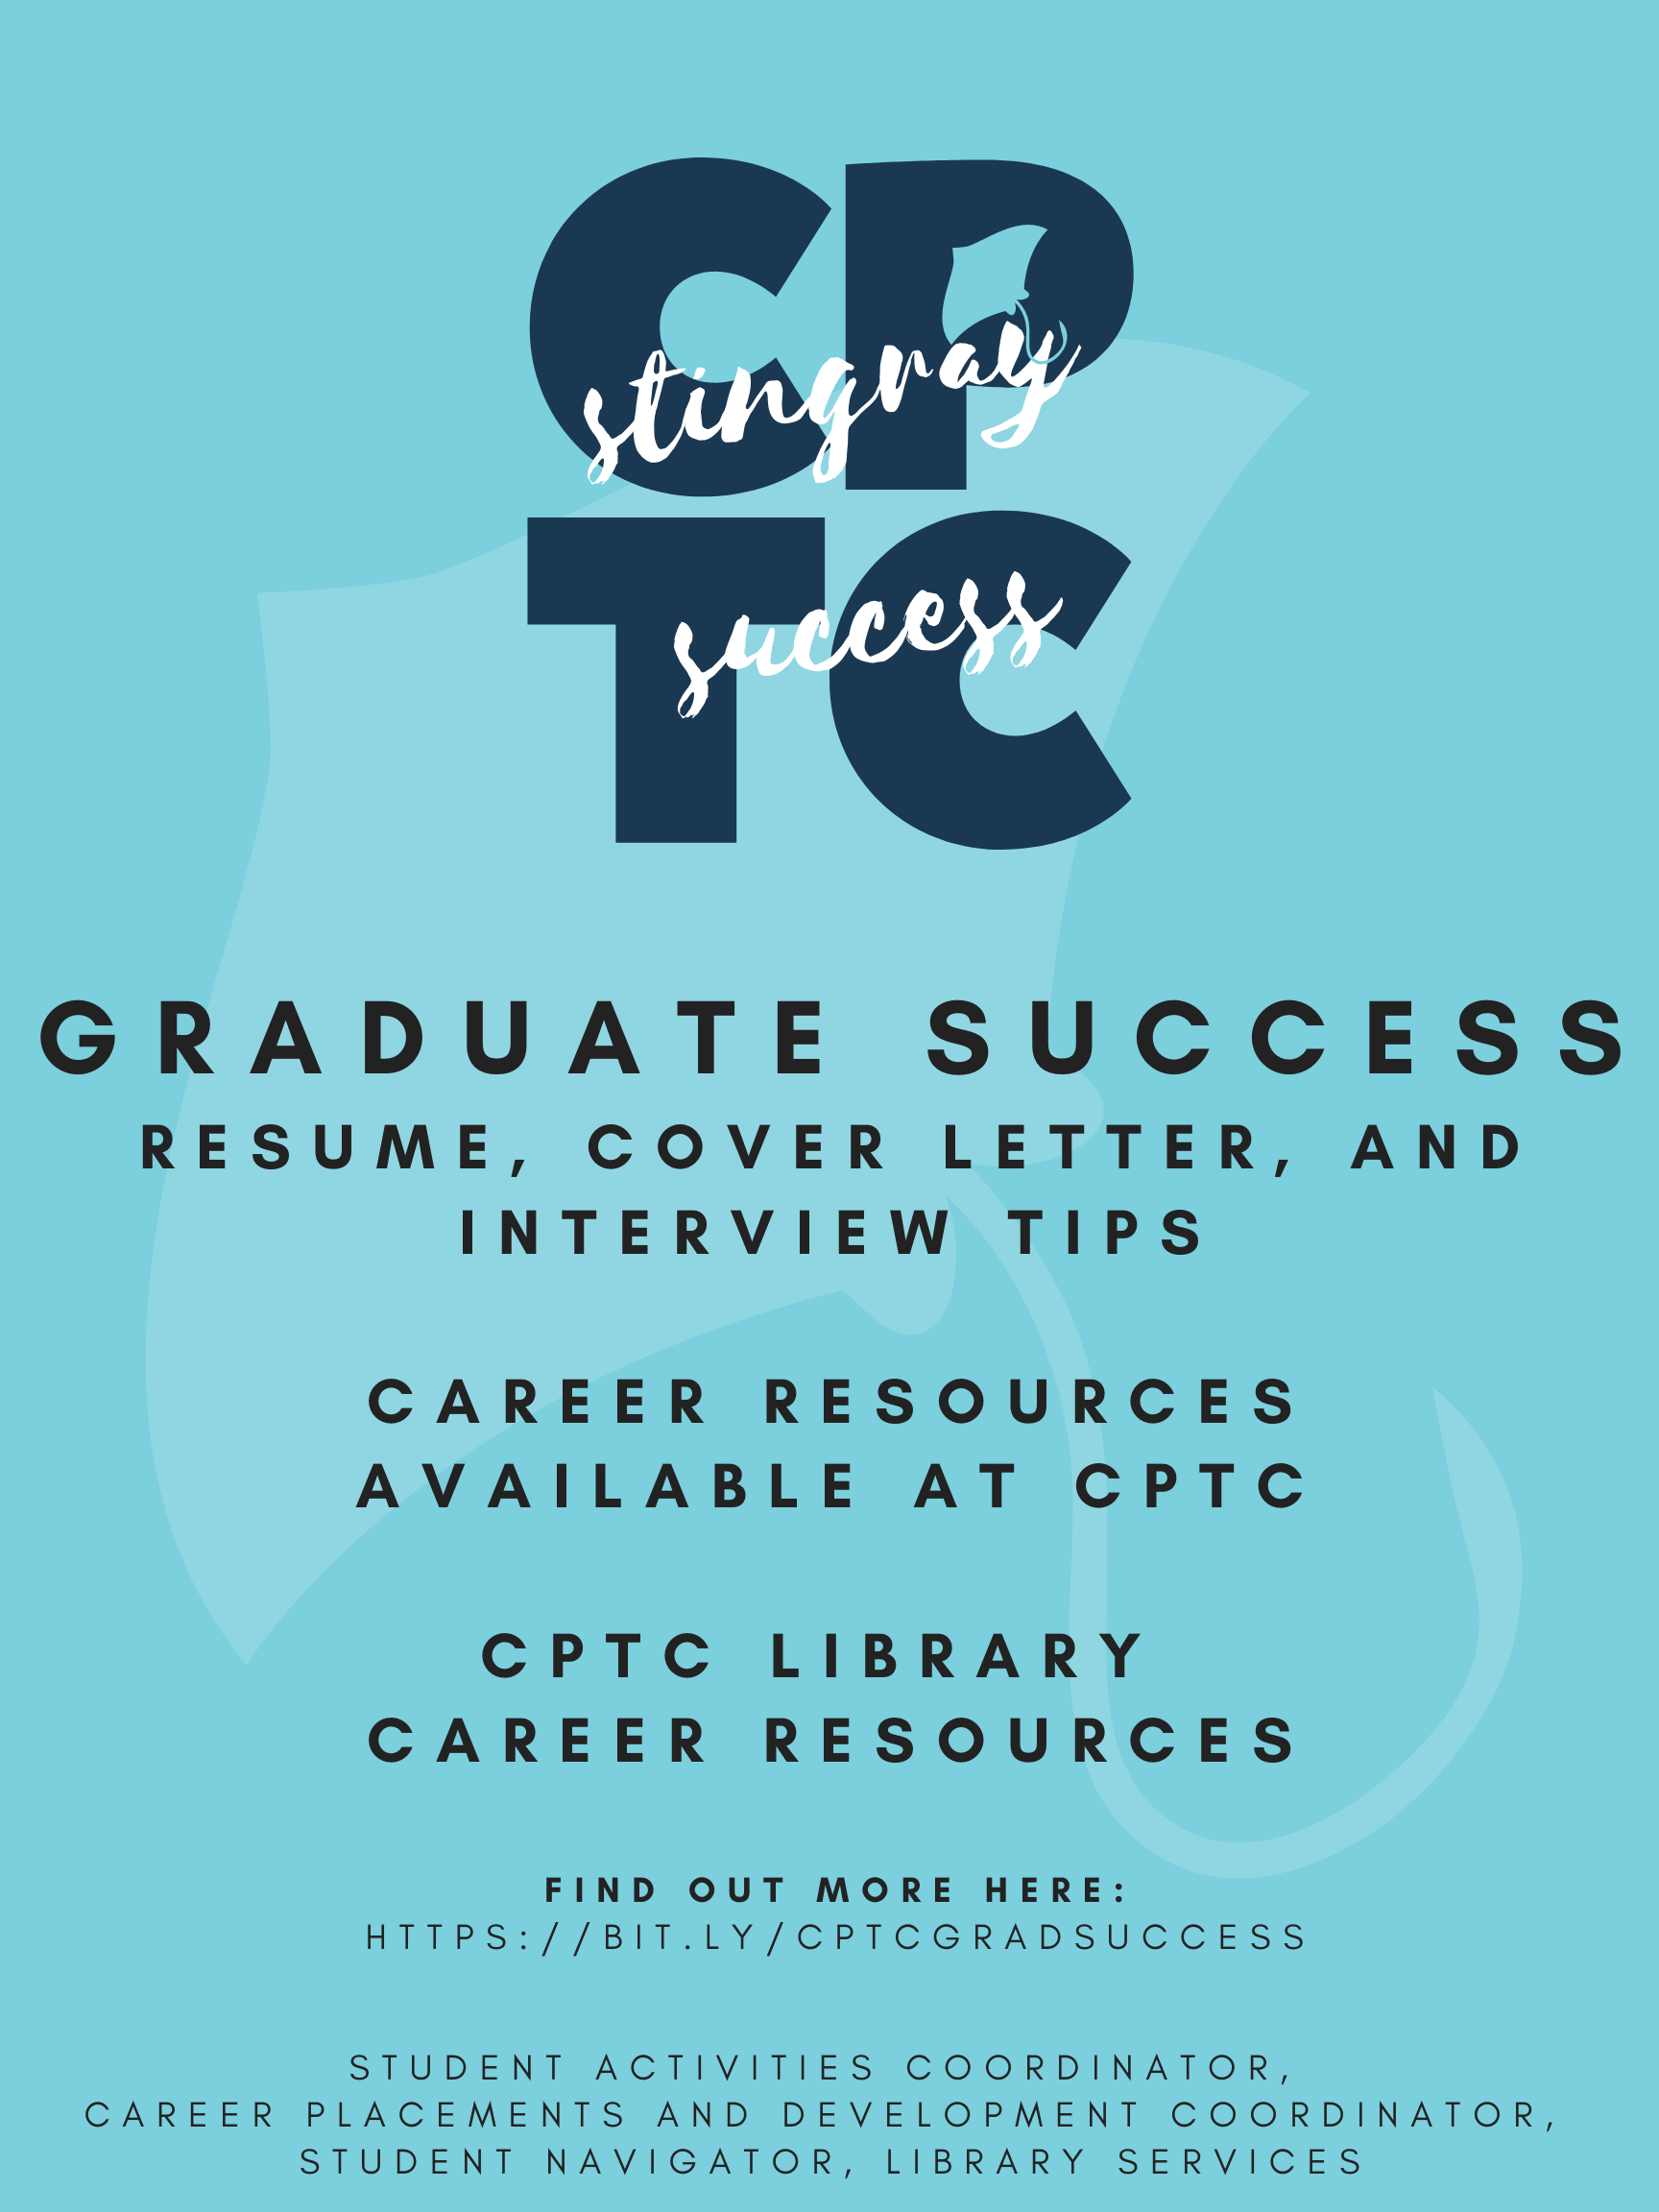 CPTC Stingray Success: Graduate Success Poster. Poster with a stingray watermark describing the Graduate Success information included in the LibGuide which includes Resume, Cover Letter, and Interview Tips; Career Resources Available at CPTC; LearningExpress Library's Job and Career Accelerator